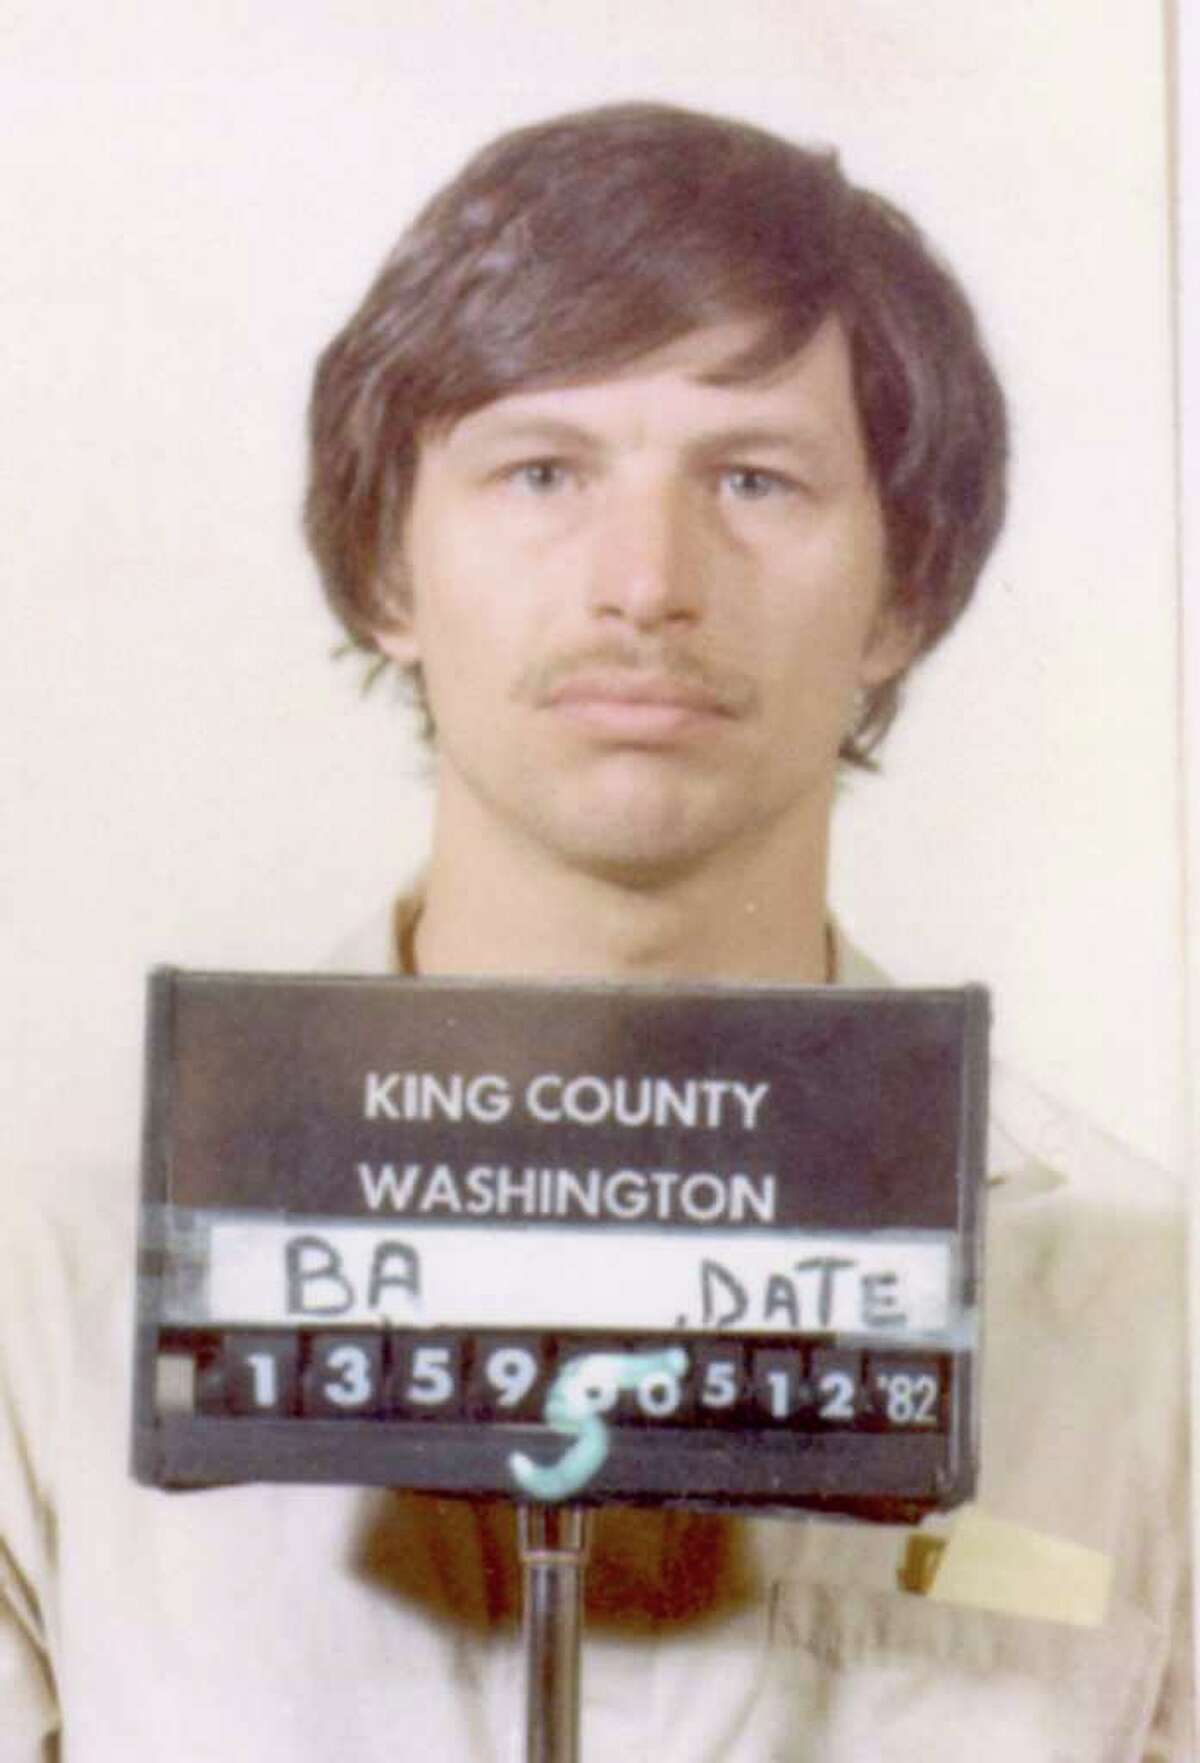 Gary Leon Ridgway, pictured in a 1982 King County Sheriff's booking mug. Ridgway was long suspected in the killings but not arrested until 2001. (AP Photo/King County Sheriff's Department, ho)